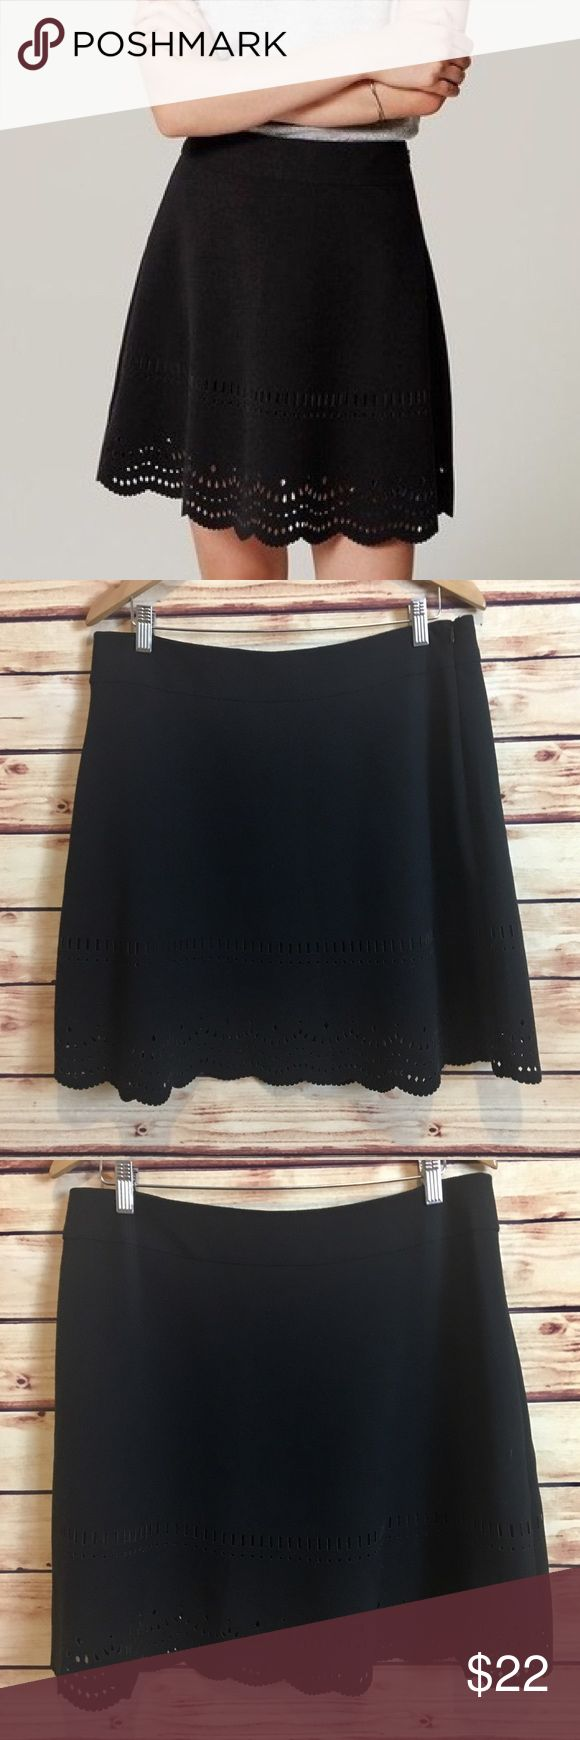 Ann Taylor LOFT Black Laser Cut Circle Skirt Ann Taylor LOFT black circle skirt. Laser cut detailing around hem. Scalloped hem. Size 12. Excellent preowned condition with no flaws. LOFT Skirts Circle & Skater